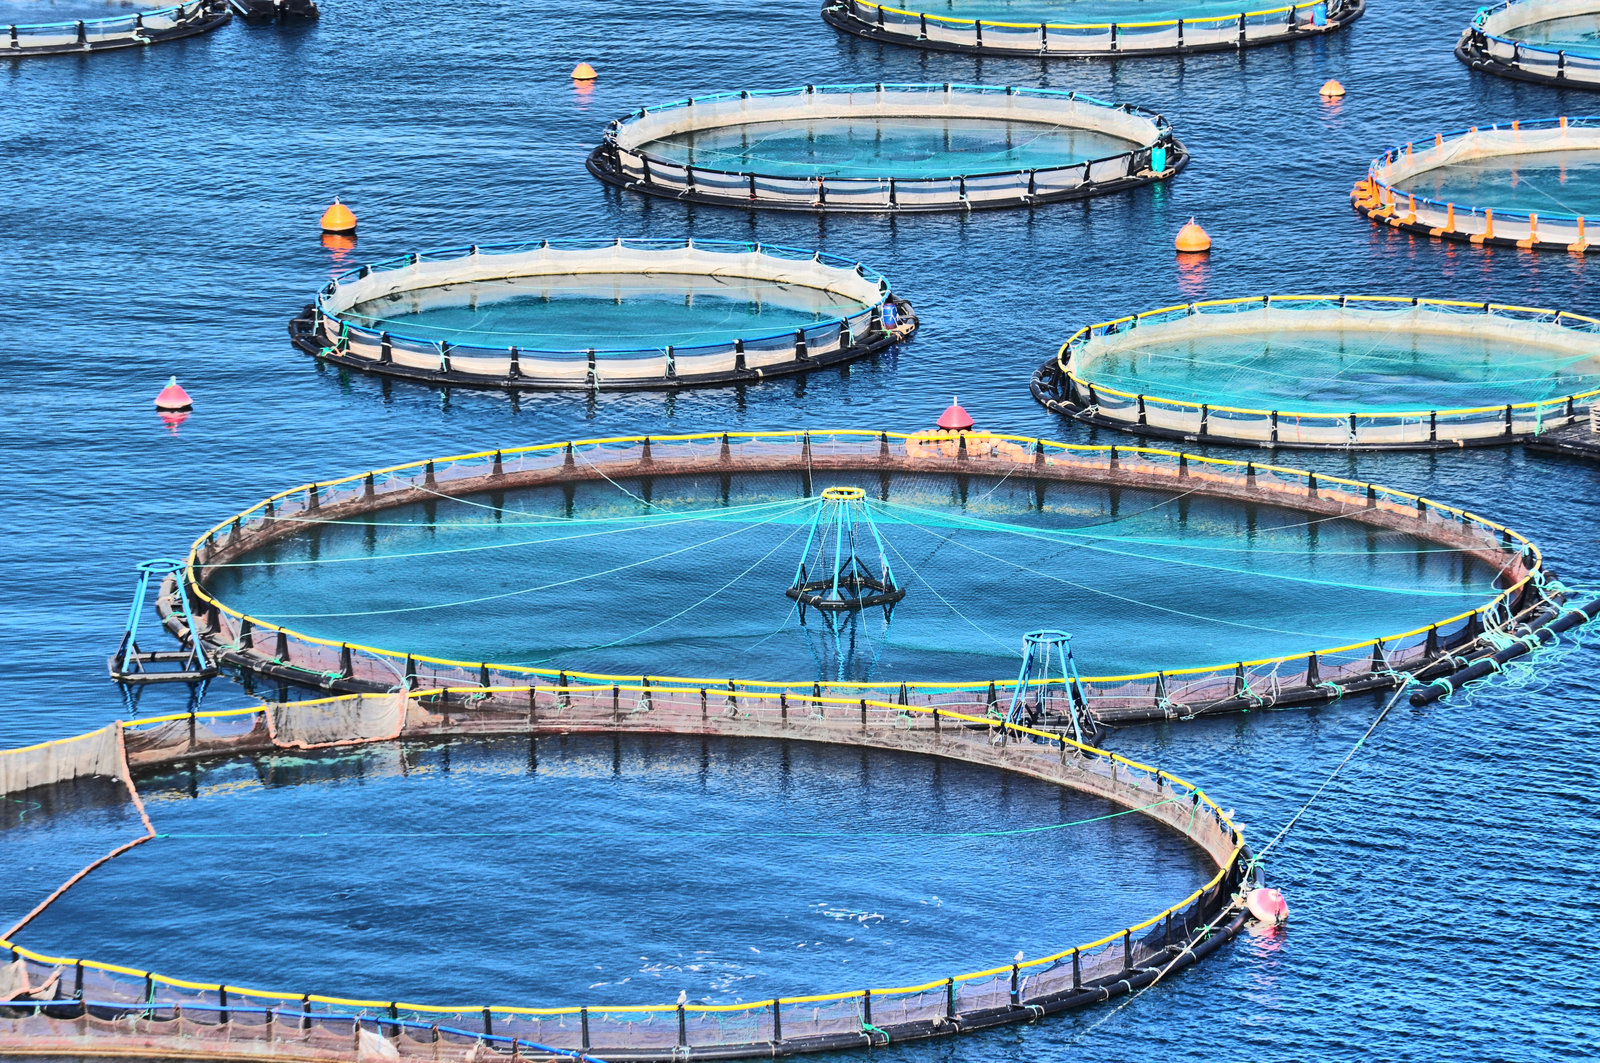 picture of fish farming environment where fish are confined in small enclosures